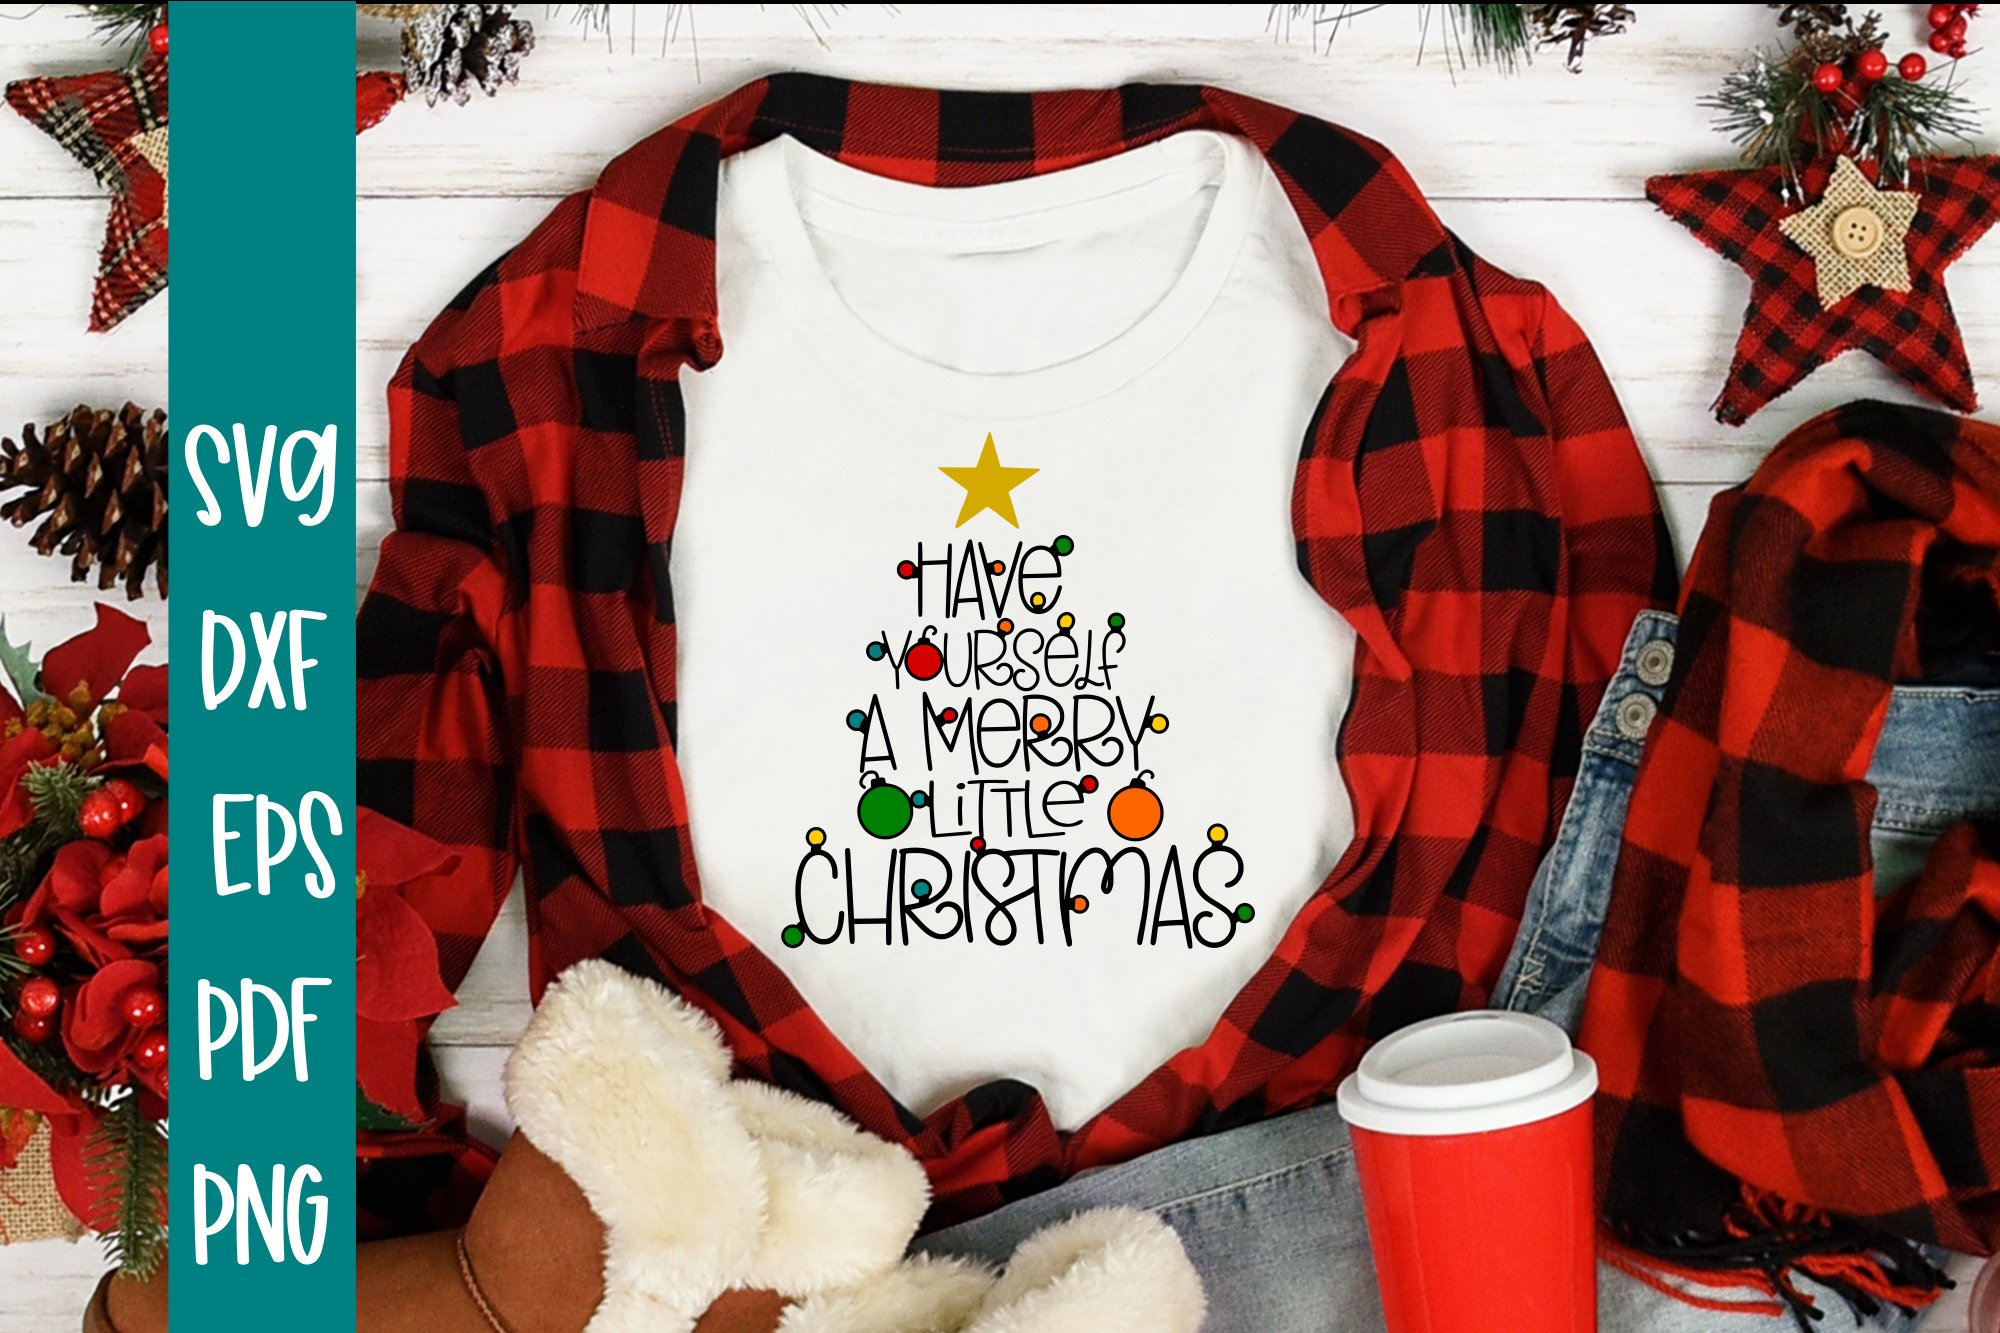 Have Yourself A Merry Little Christmas SVG example image 1